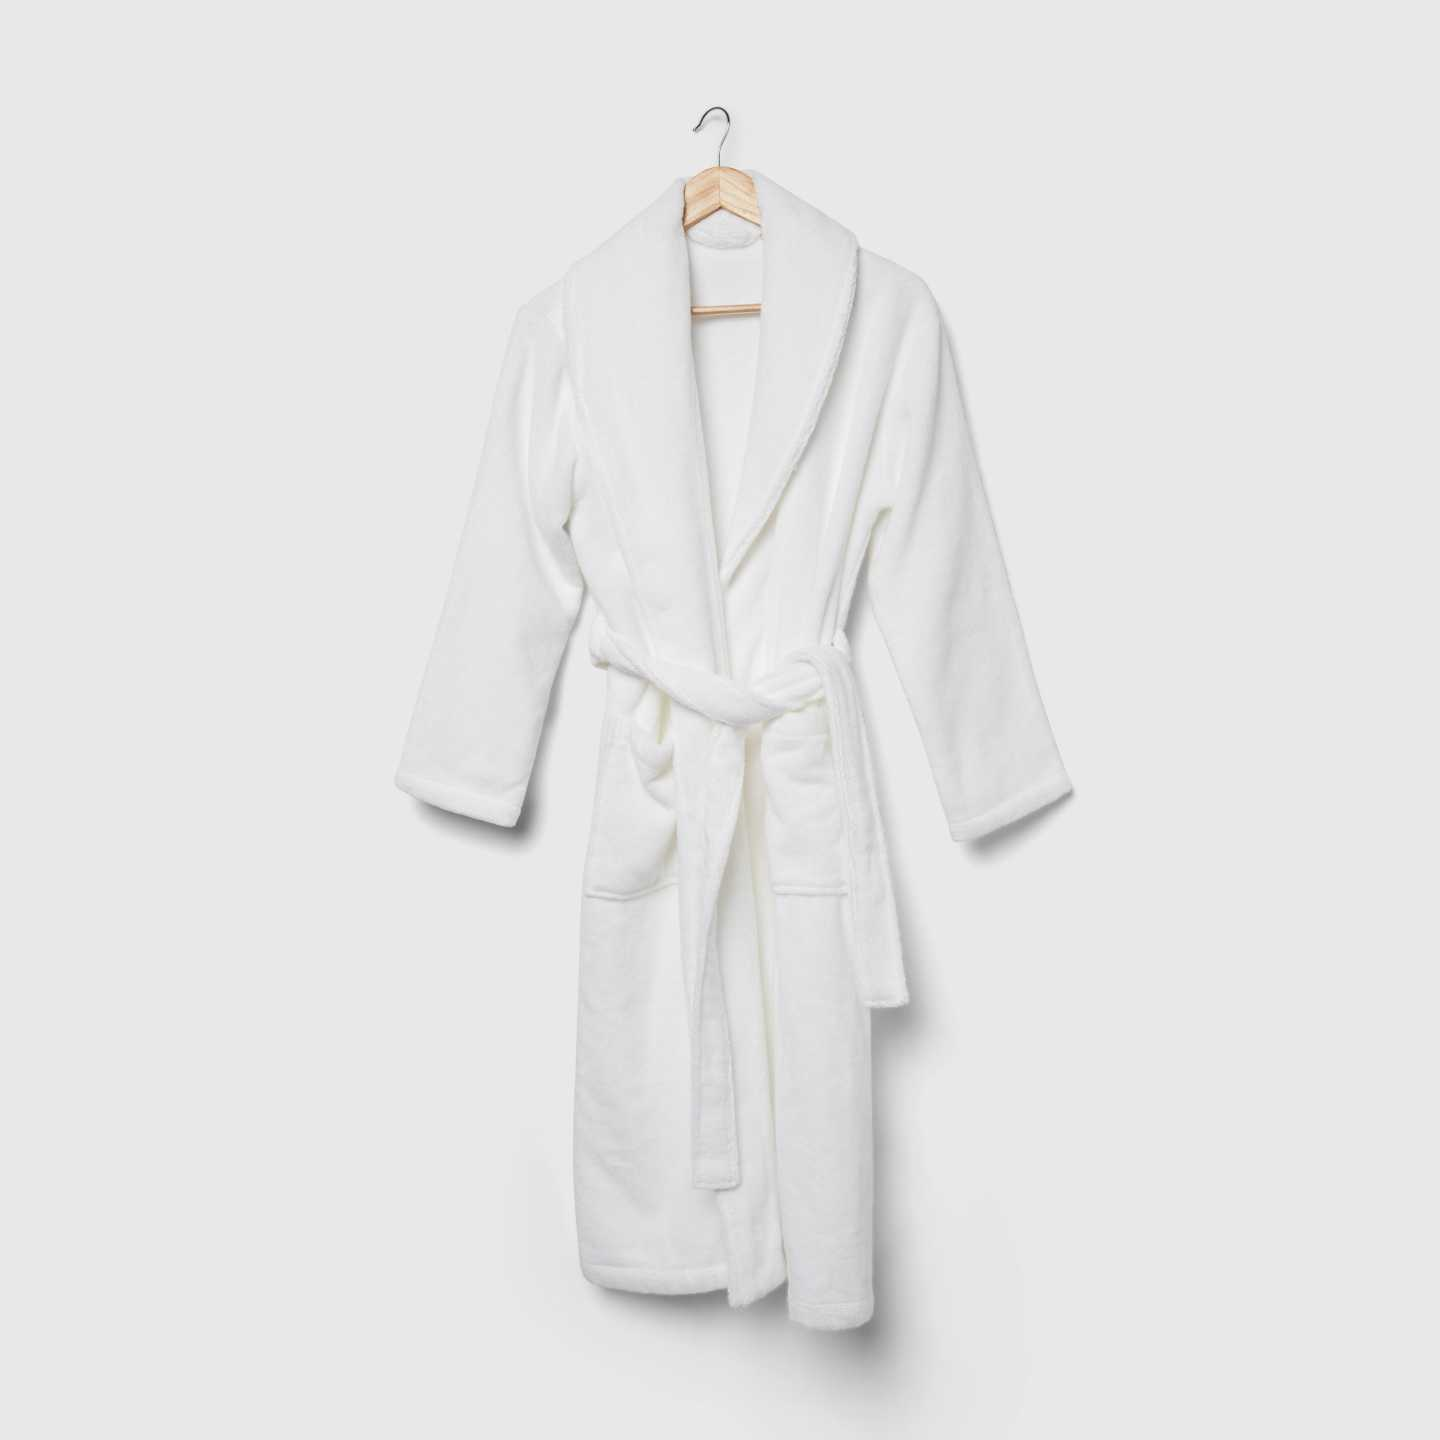 Turkish cotton bath robe